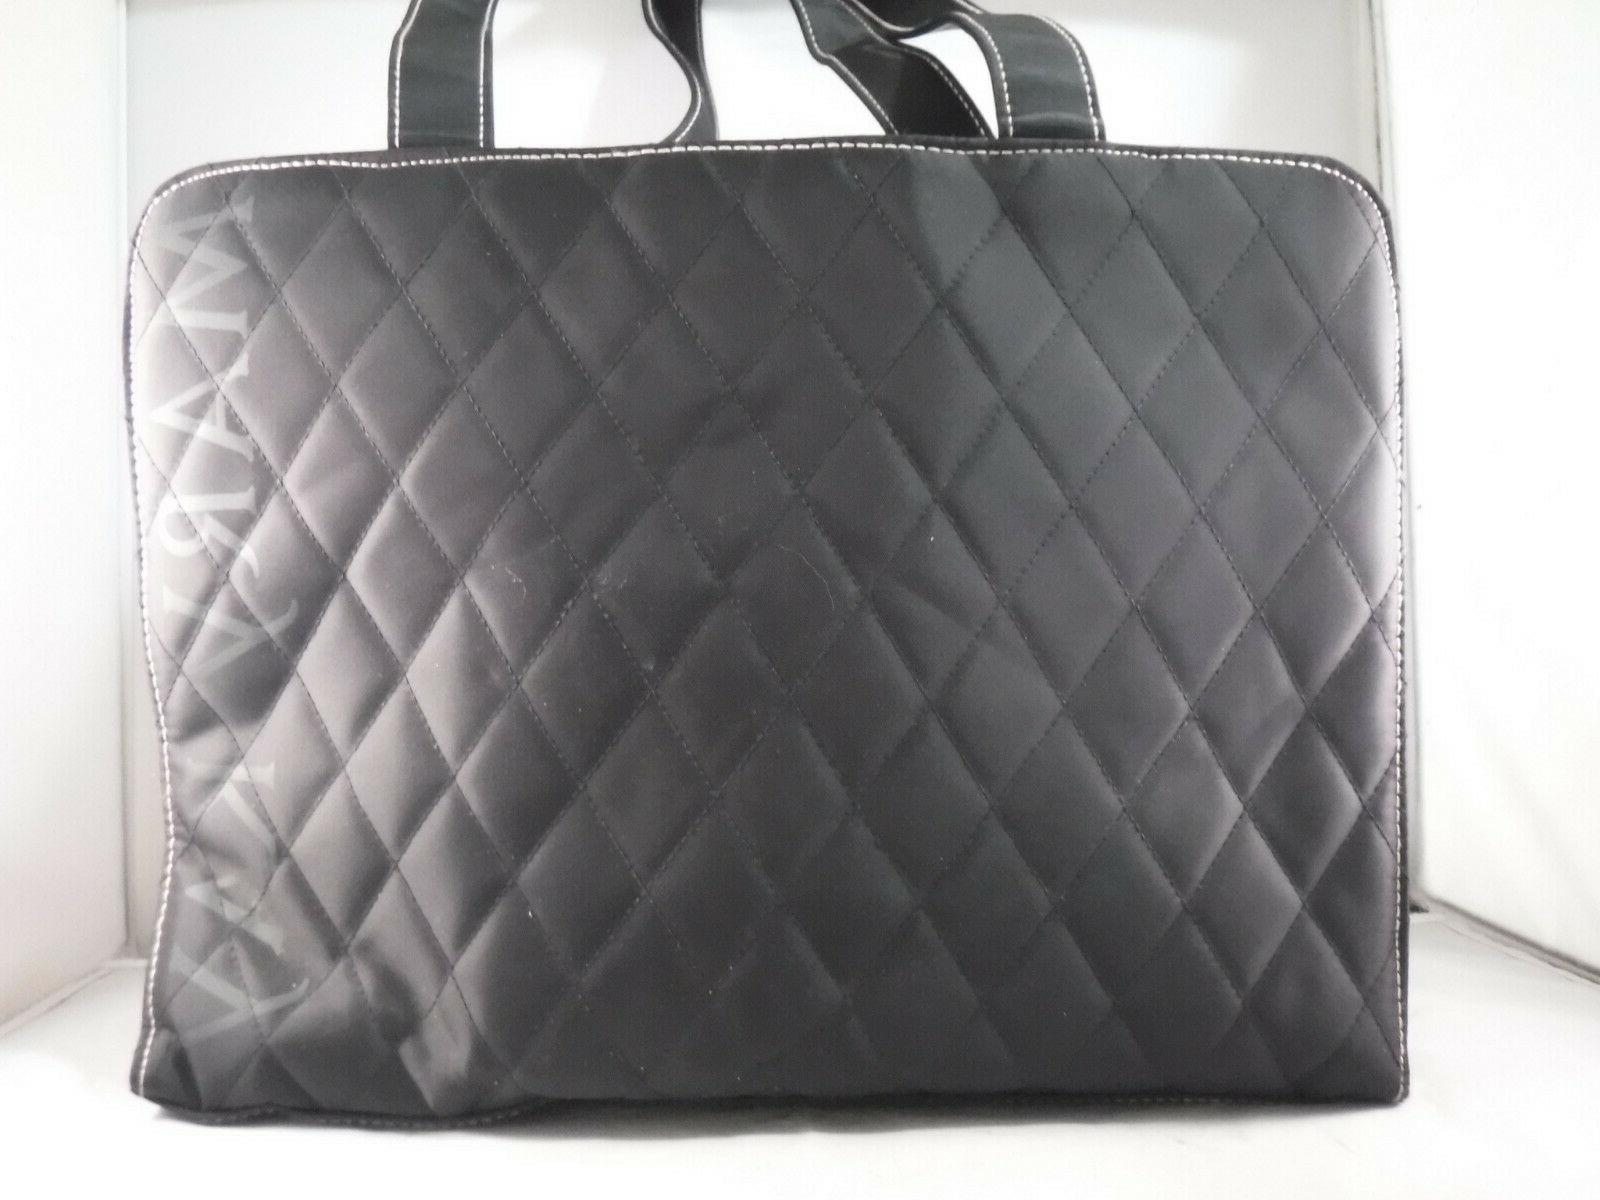 NWOT Mary Consultant Black Quilted Tote